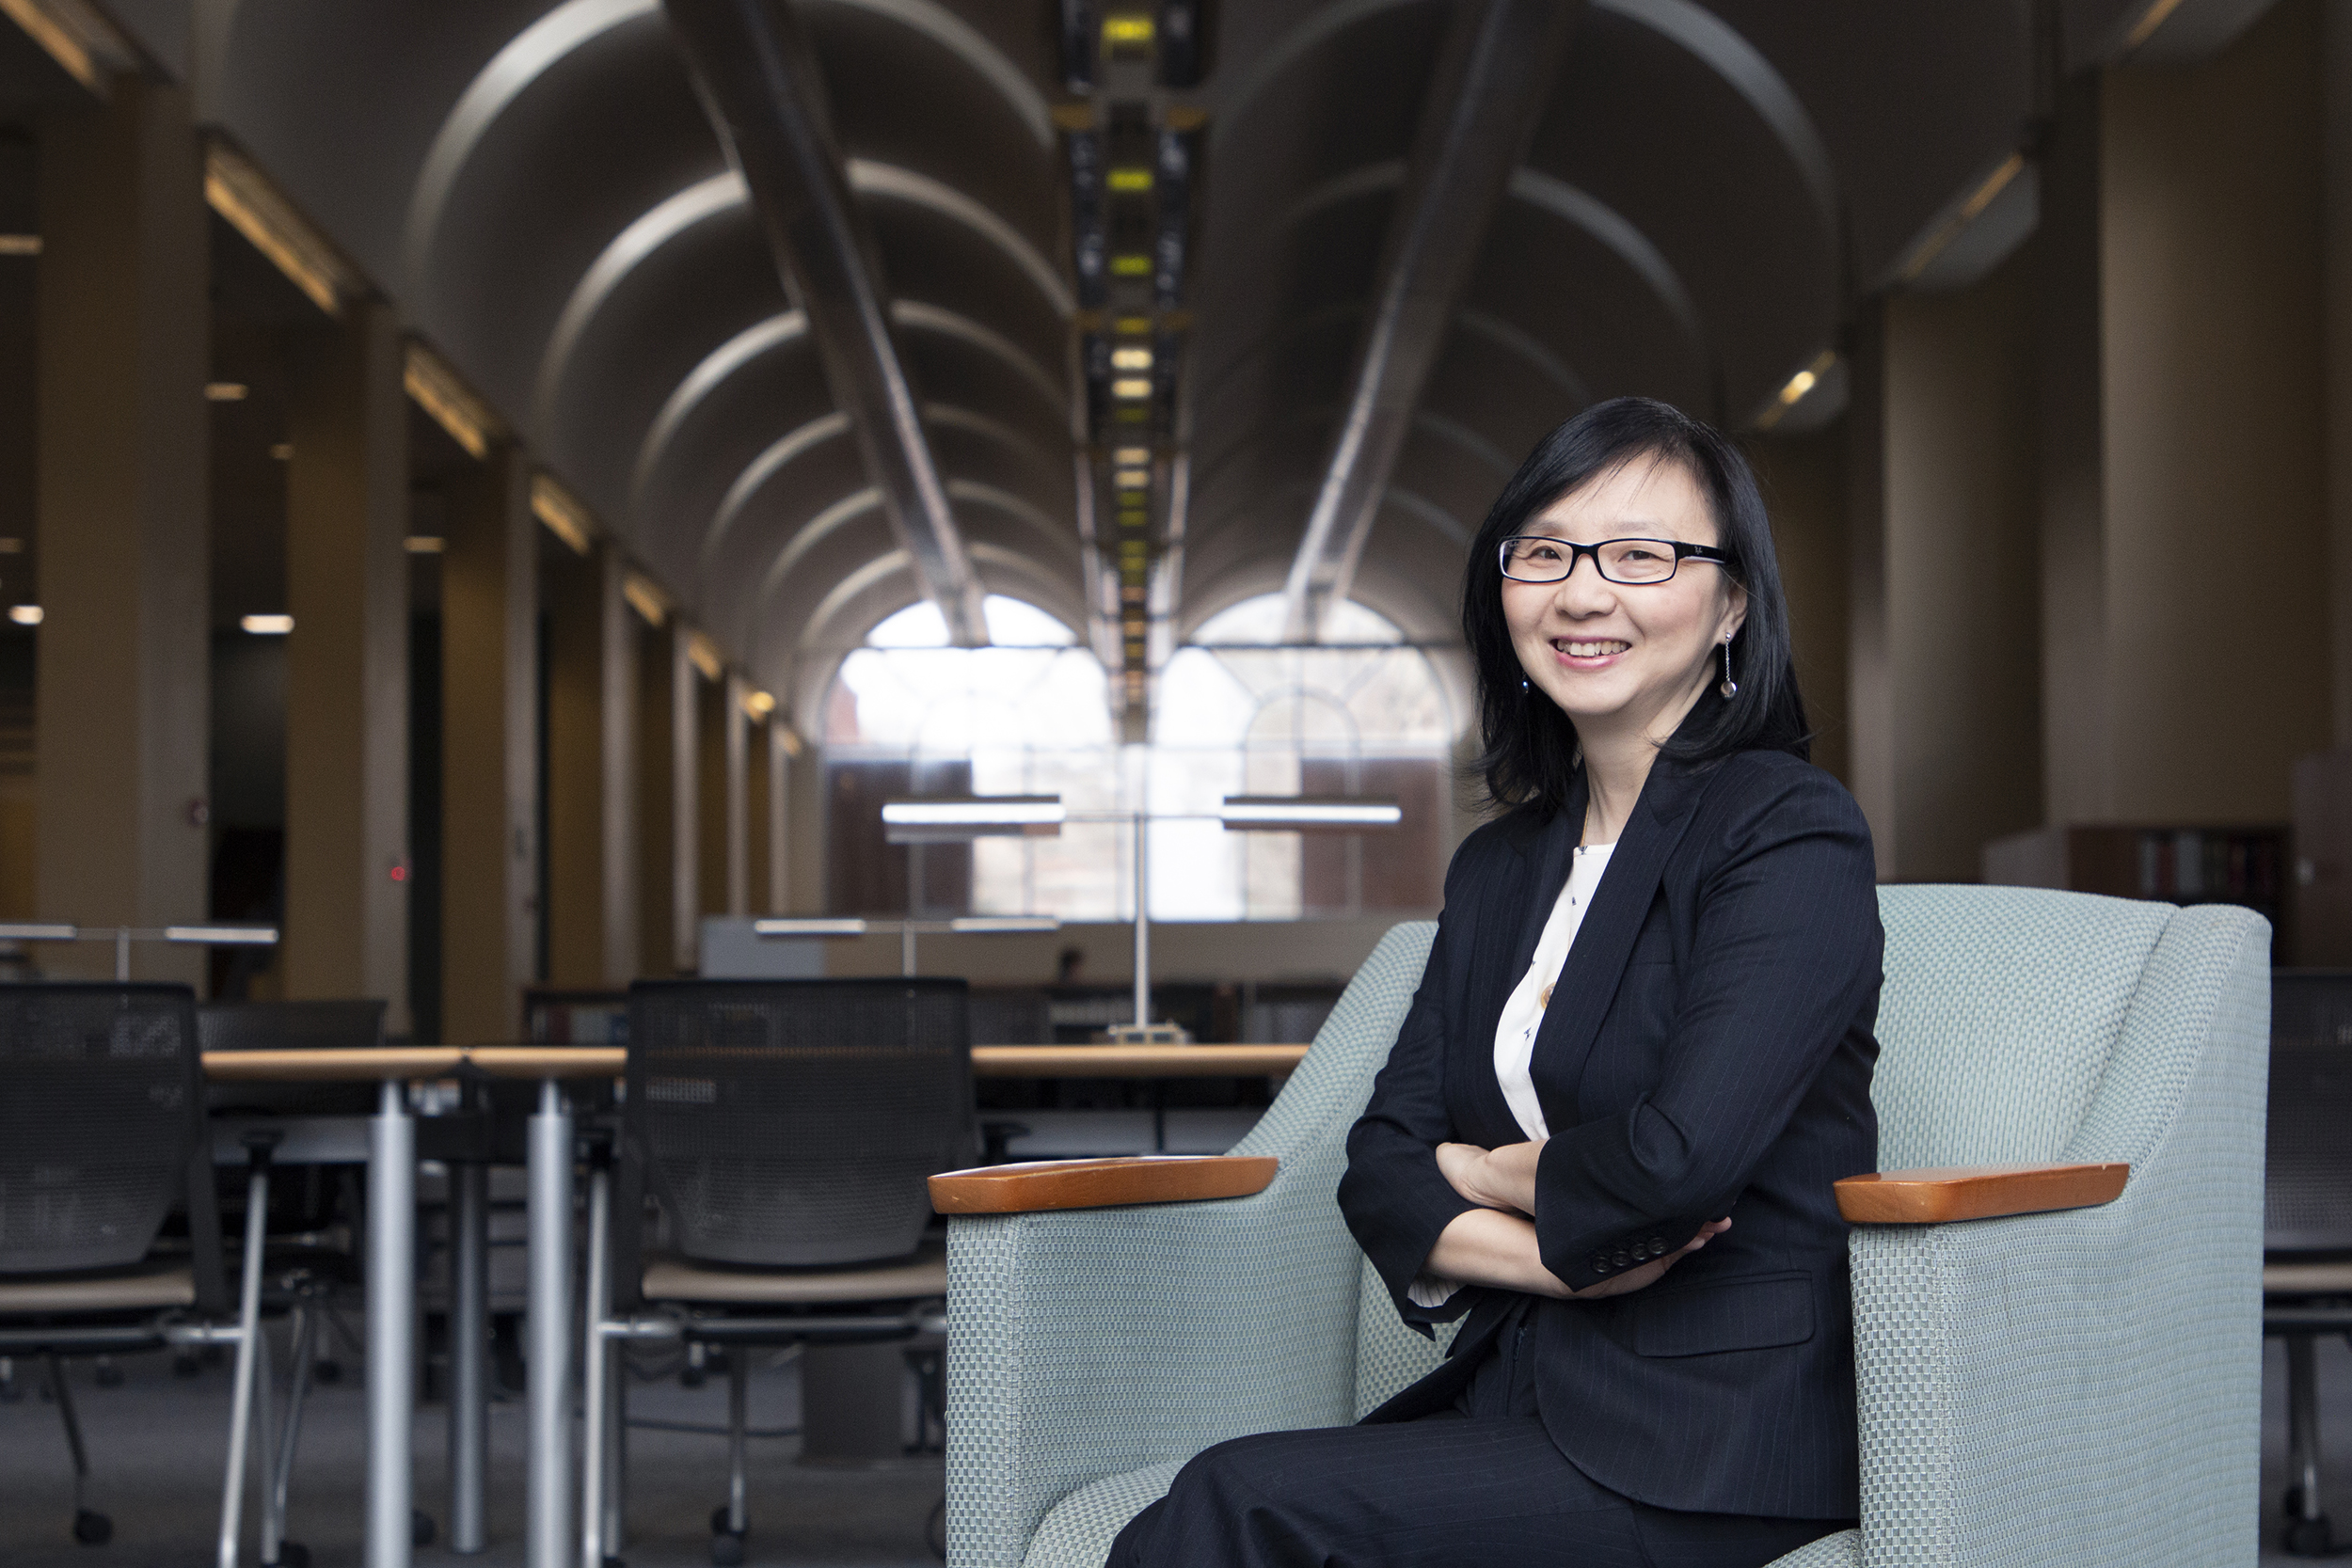 Ping Chen in a blue chair in Davis Library